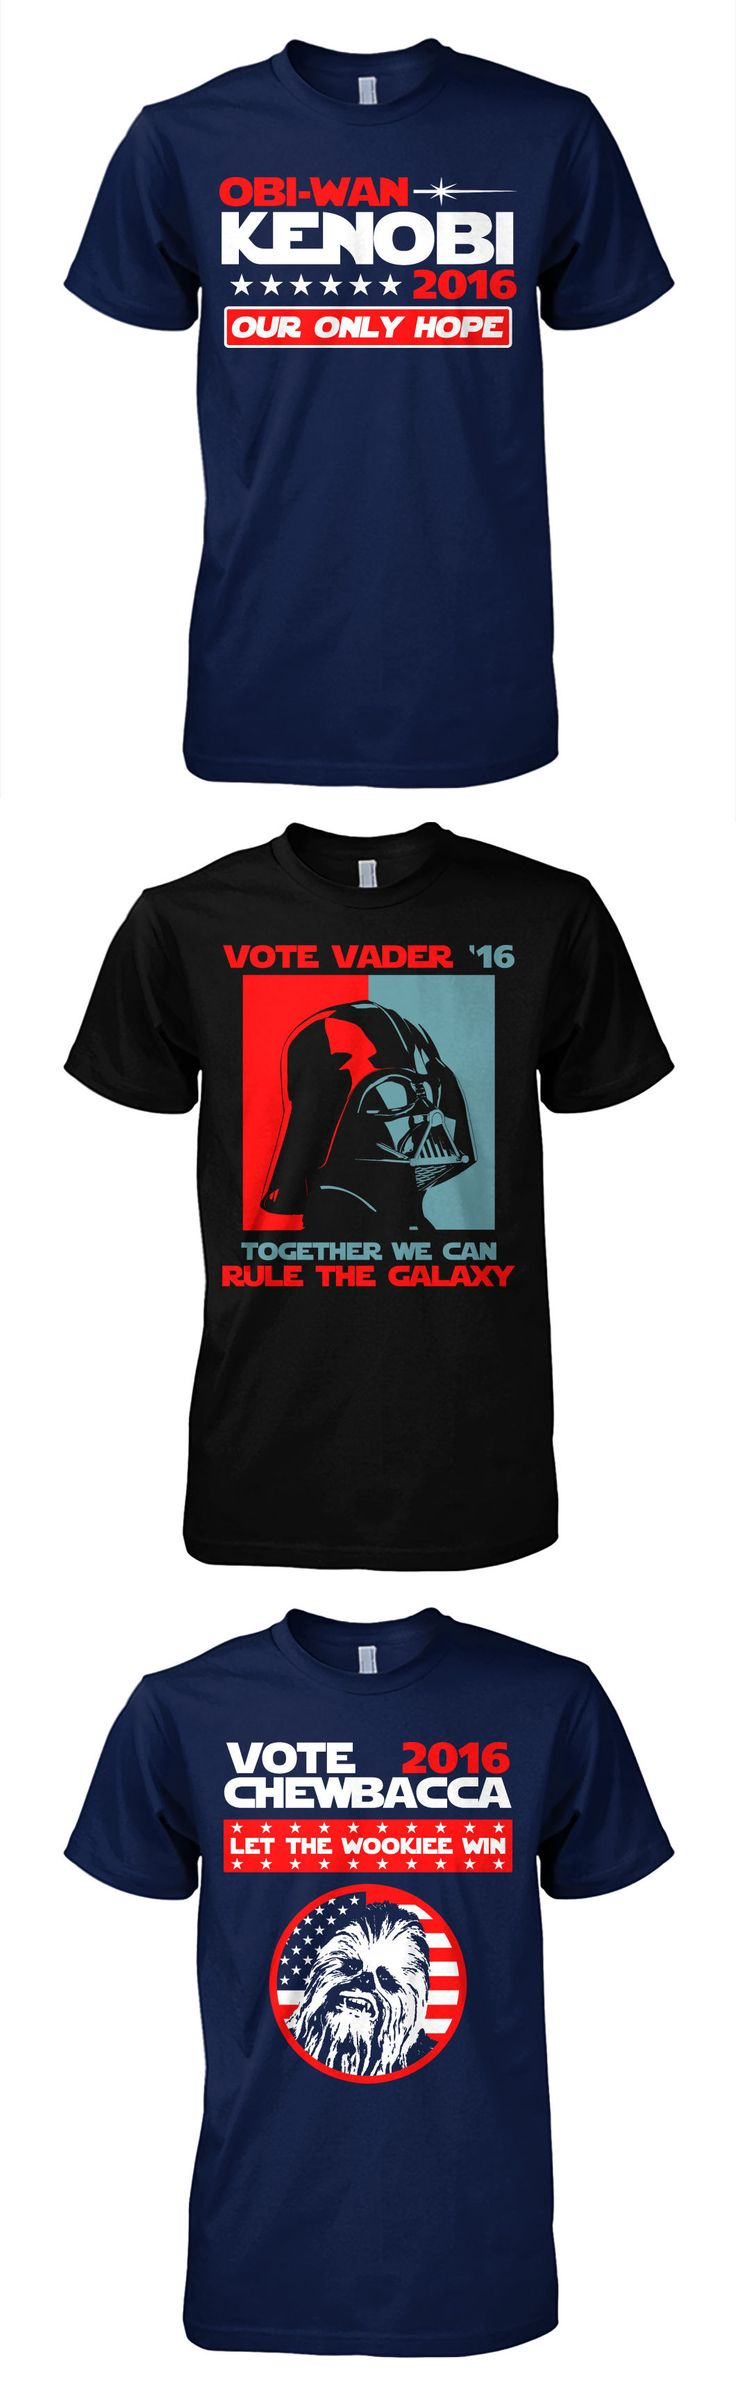 Show where your support lies in 2016 (click image to purchase)